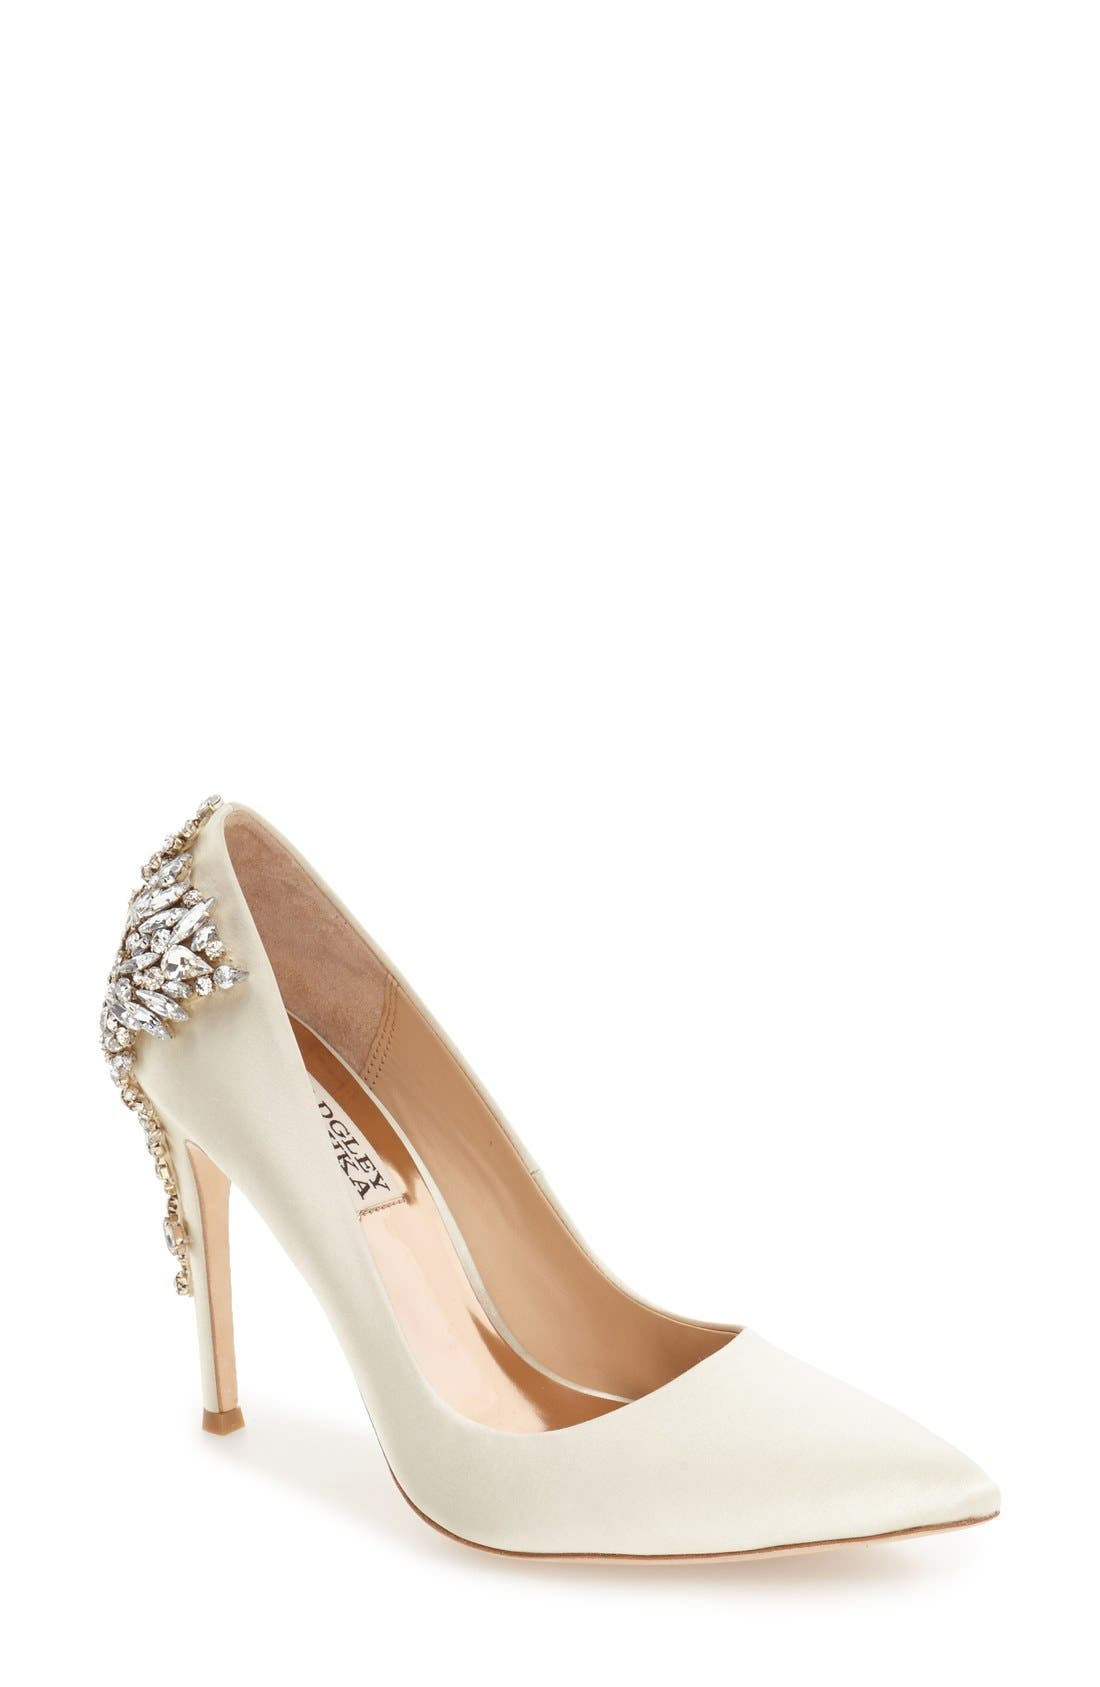 'Gorgeous' Crystal Embellished Pointy Toe Pump,                             Main thumbnail 1, color,                             Ivory Satin